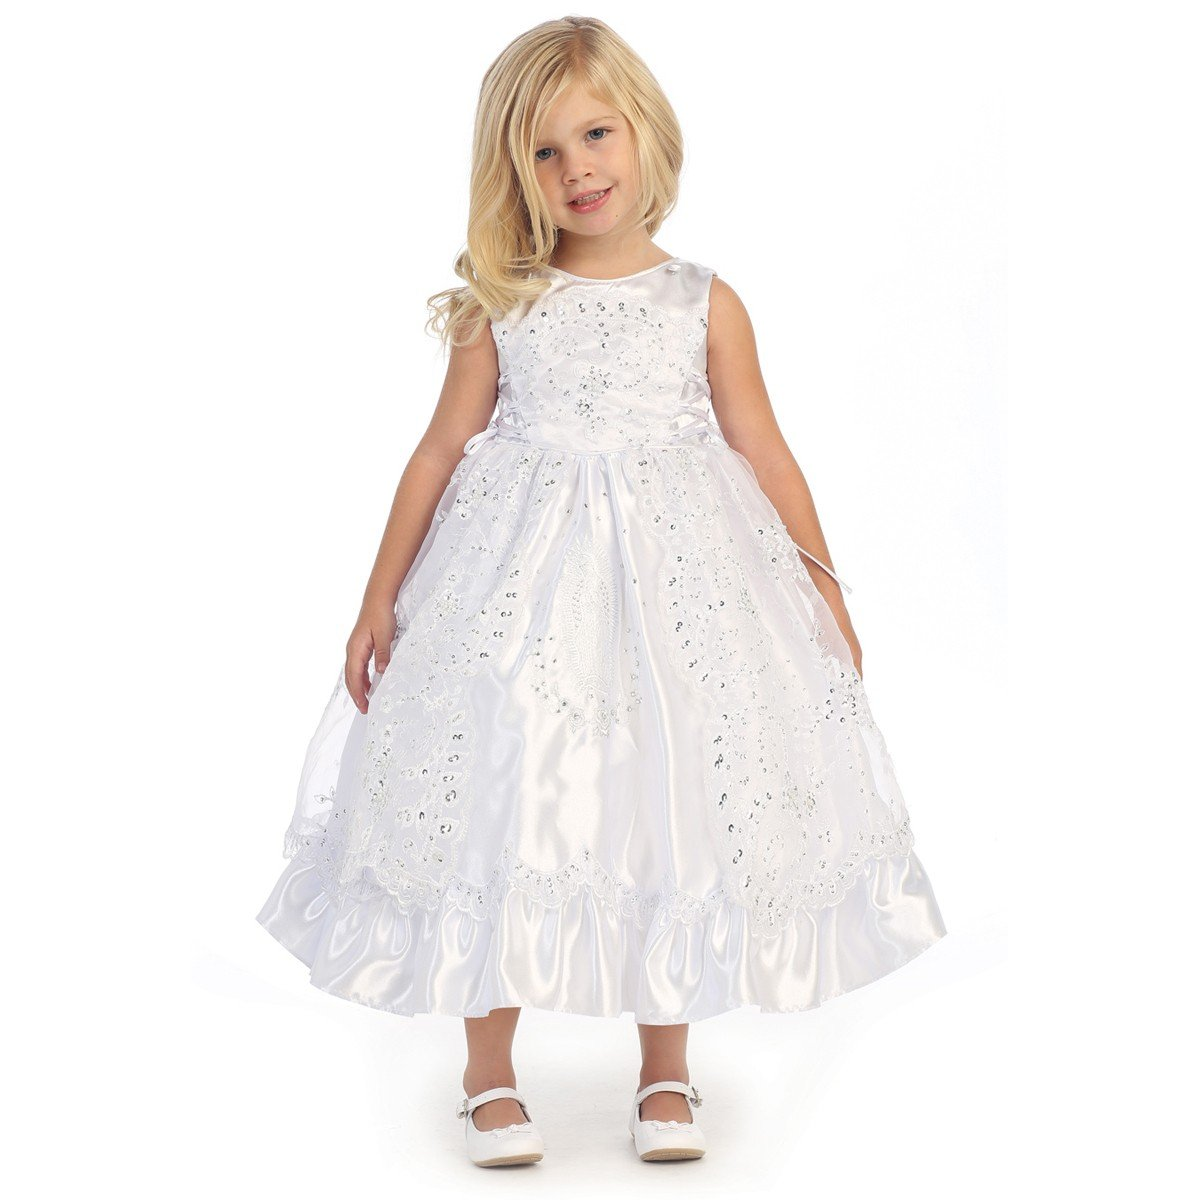 Angels Garment Baby Girls White Organza Embroidered Flower Girl Dress 12-18M